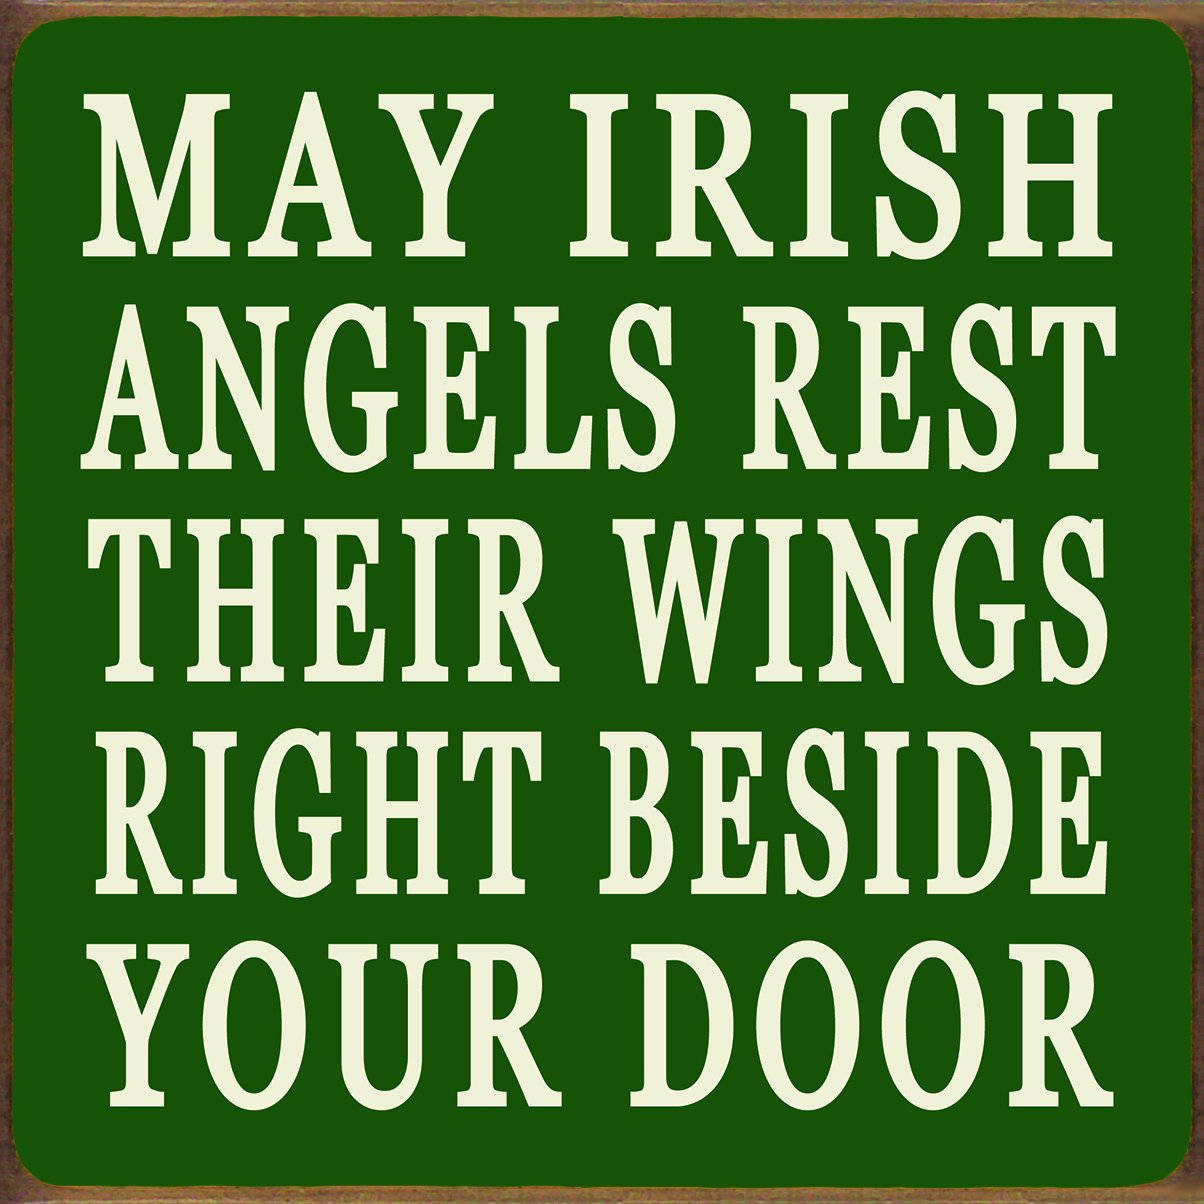 May Irish Angels Rest-Block Sign x 7.25 Green with Cream Lettering My Word